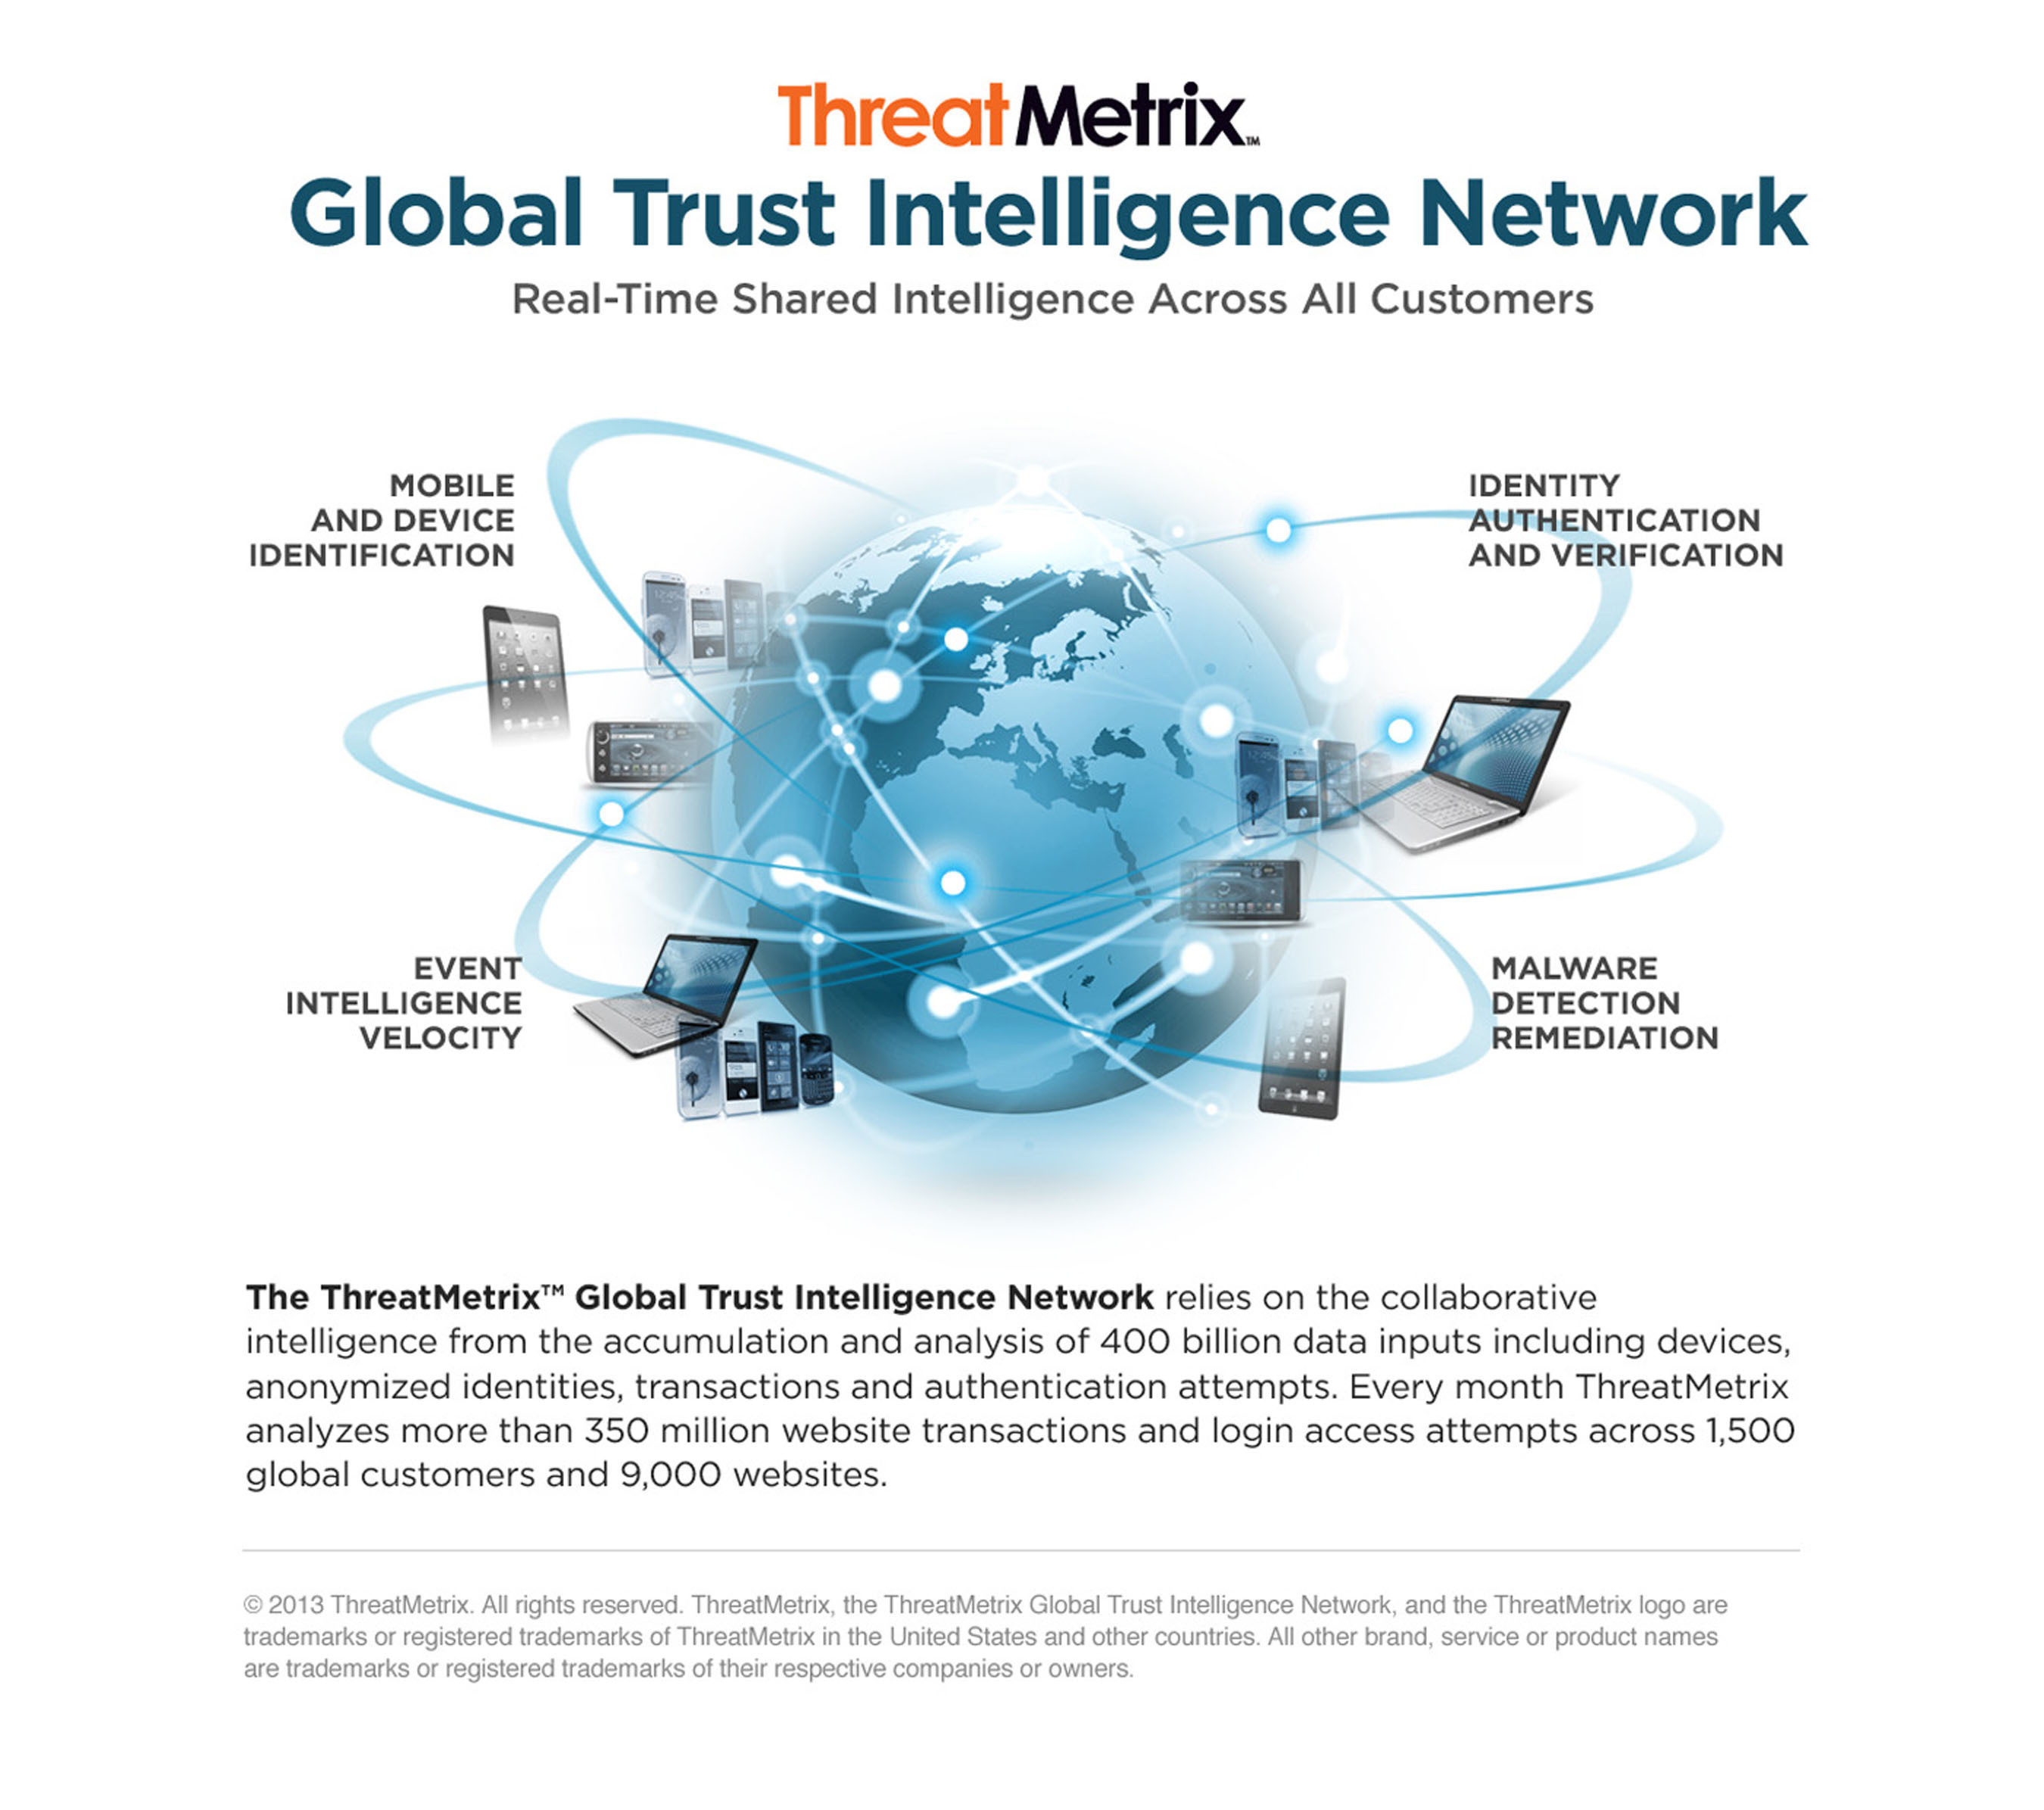 ThreatMetrix Global Trust Intelligence Network Ensures Frictionless Access to Mission-Critical Web